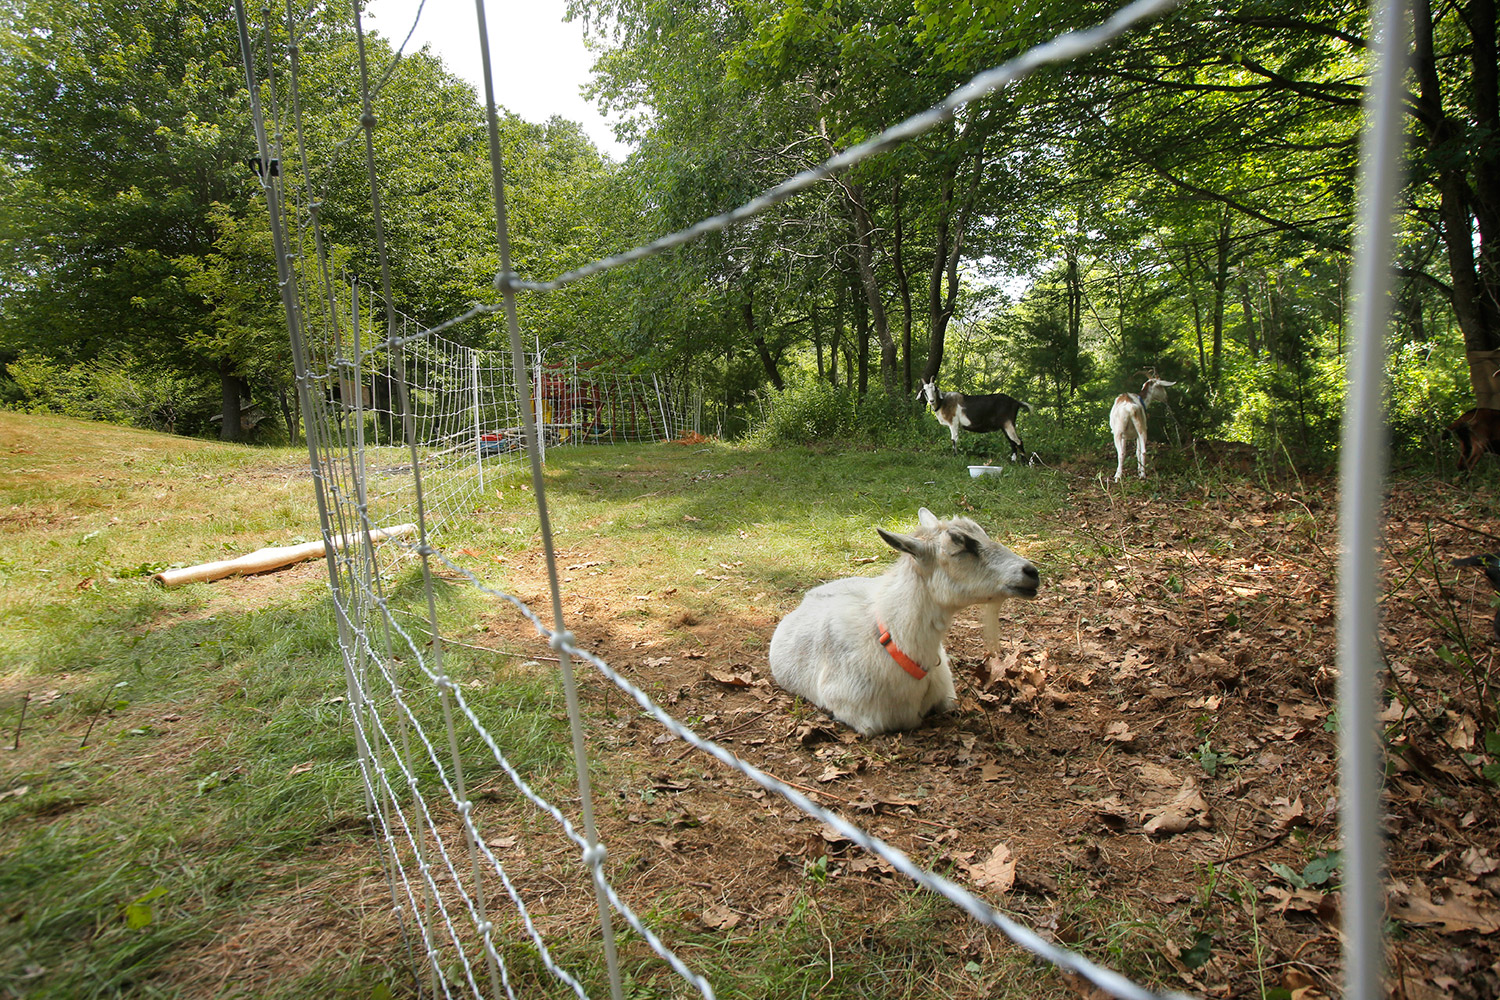 Cleo, a six-year-old goat owned by Heather Lombard, rests in a penned in area at the home in Kittery where Cleo and six other goats were put to work clearing unwanted vegetation last week.